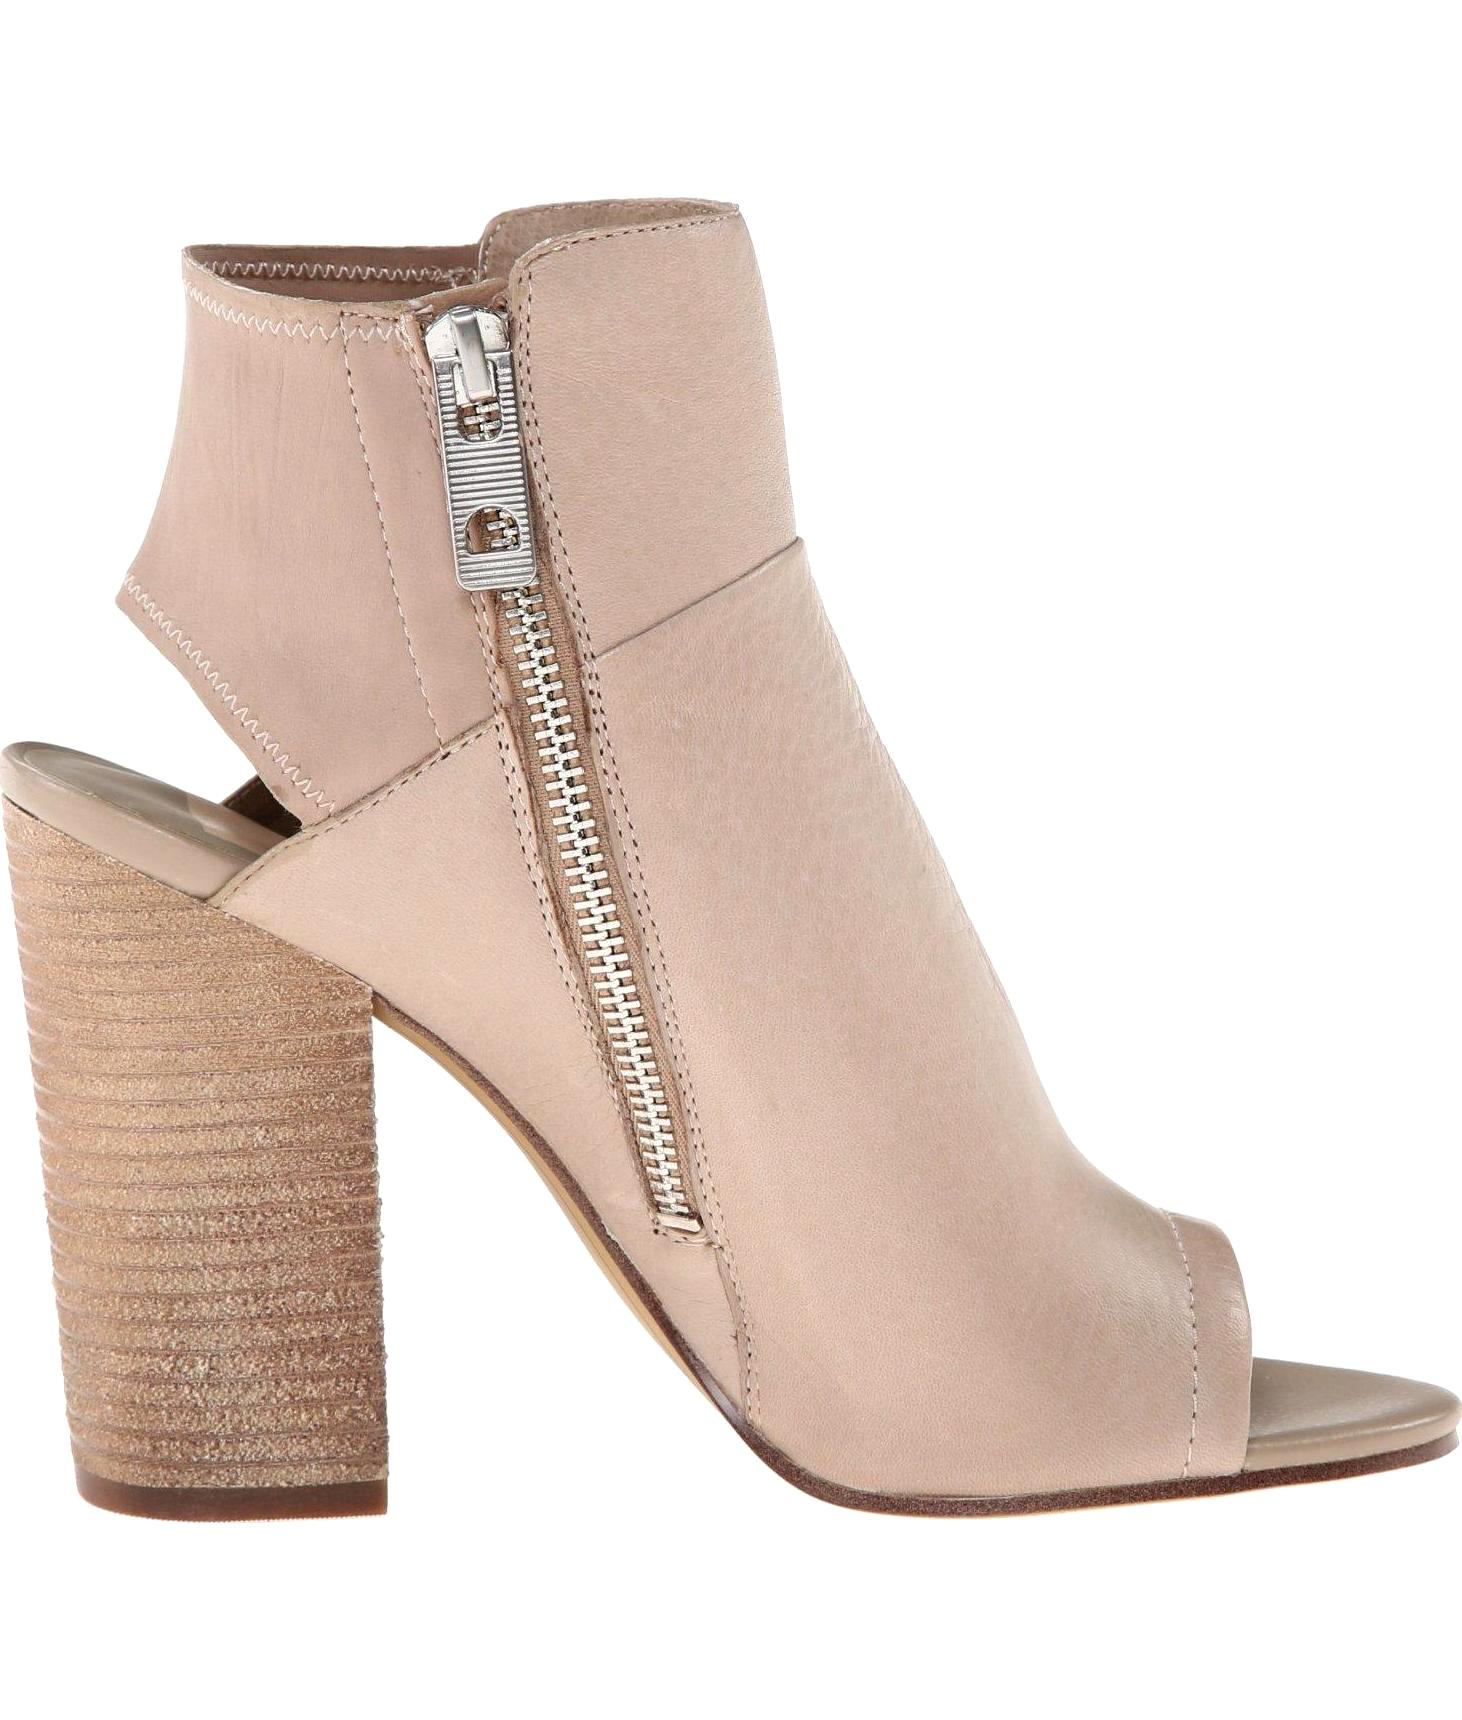 Am Dolce Vita: Dolce Vita Women's Leka Boot In Taupe